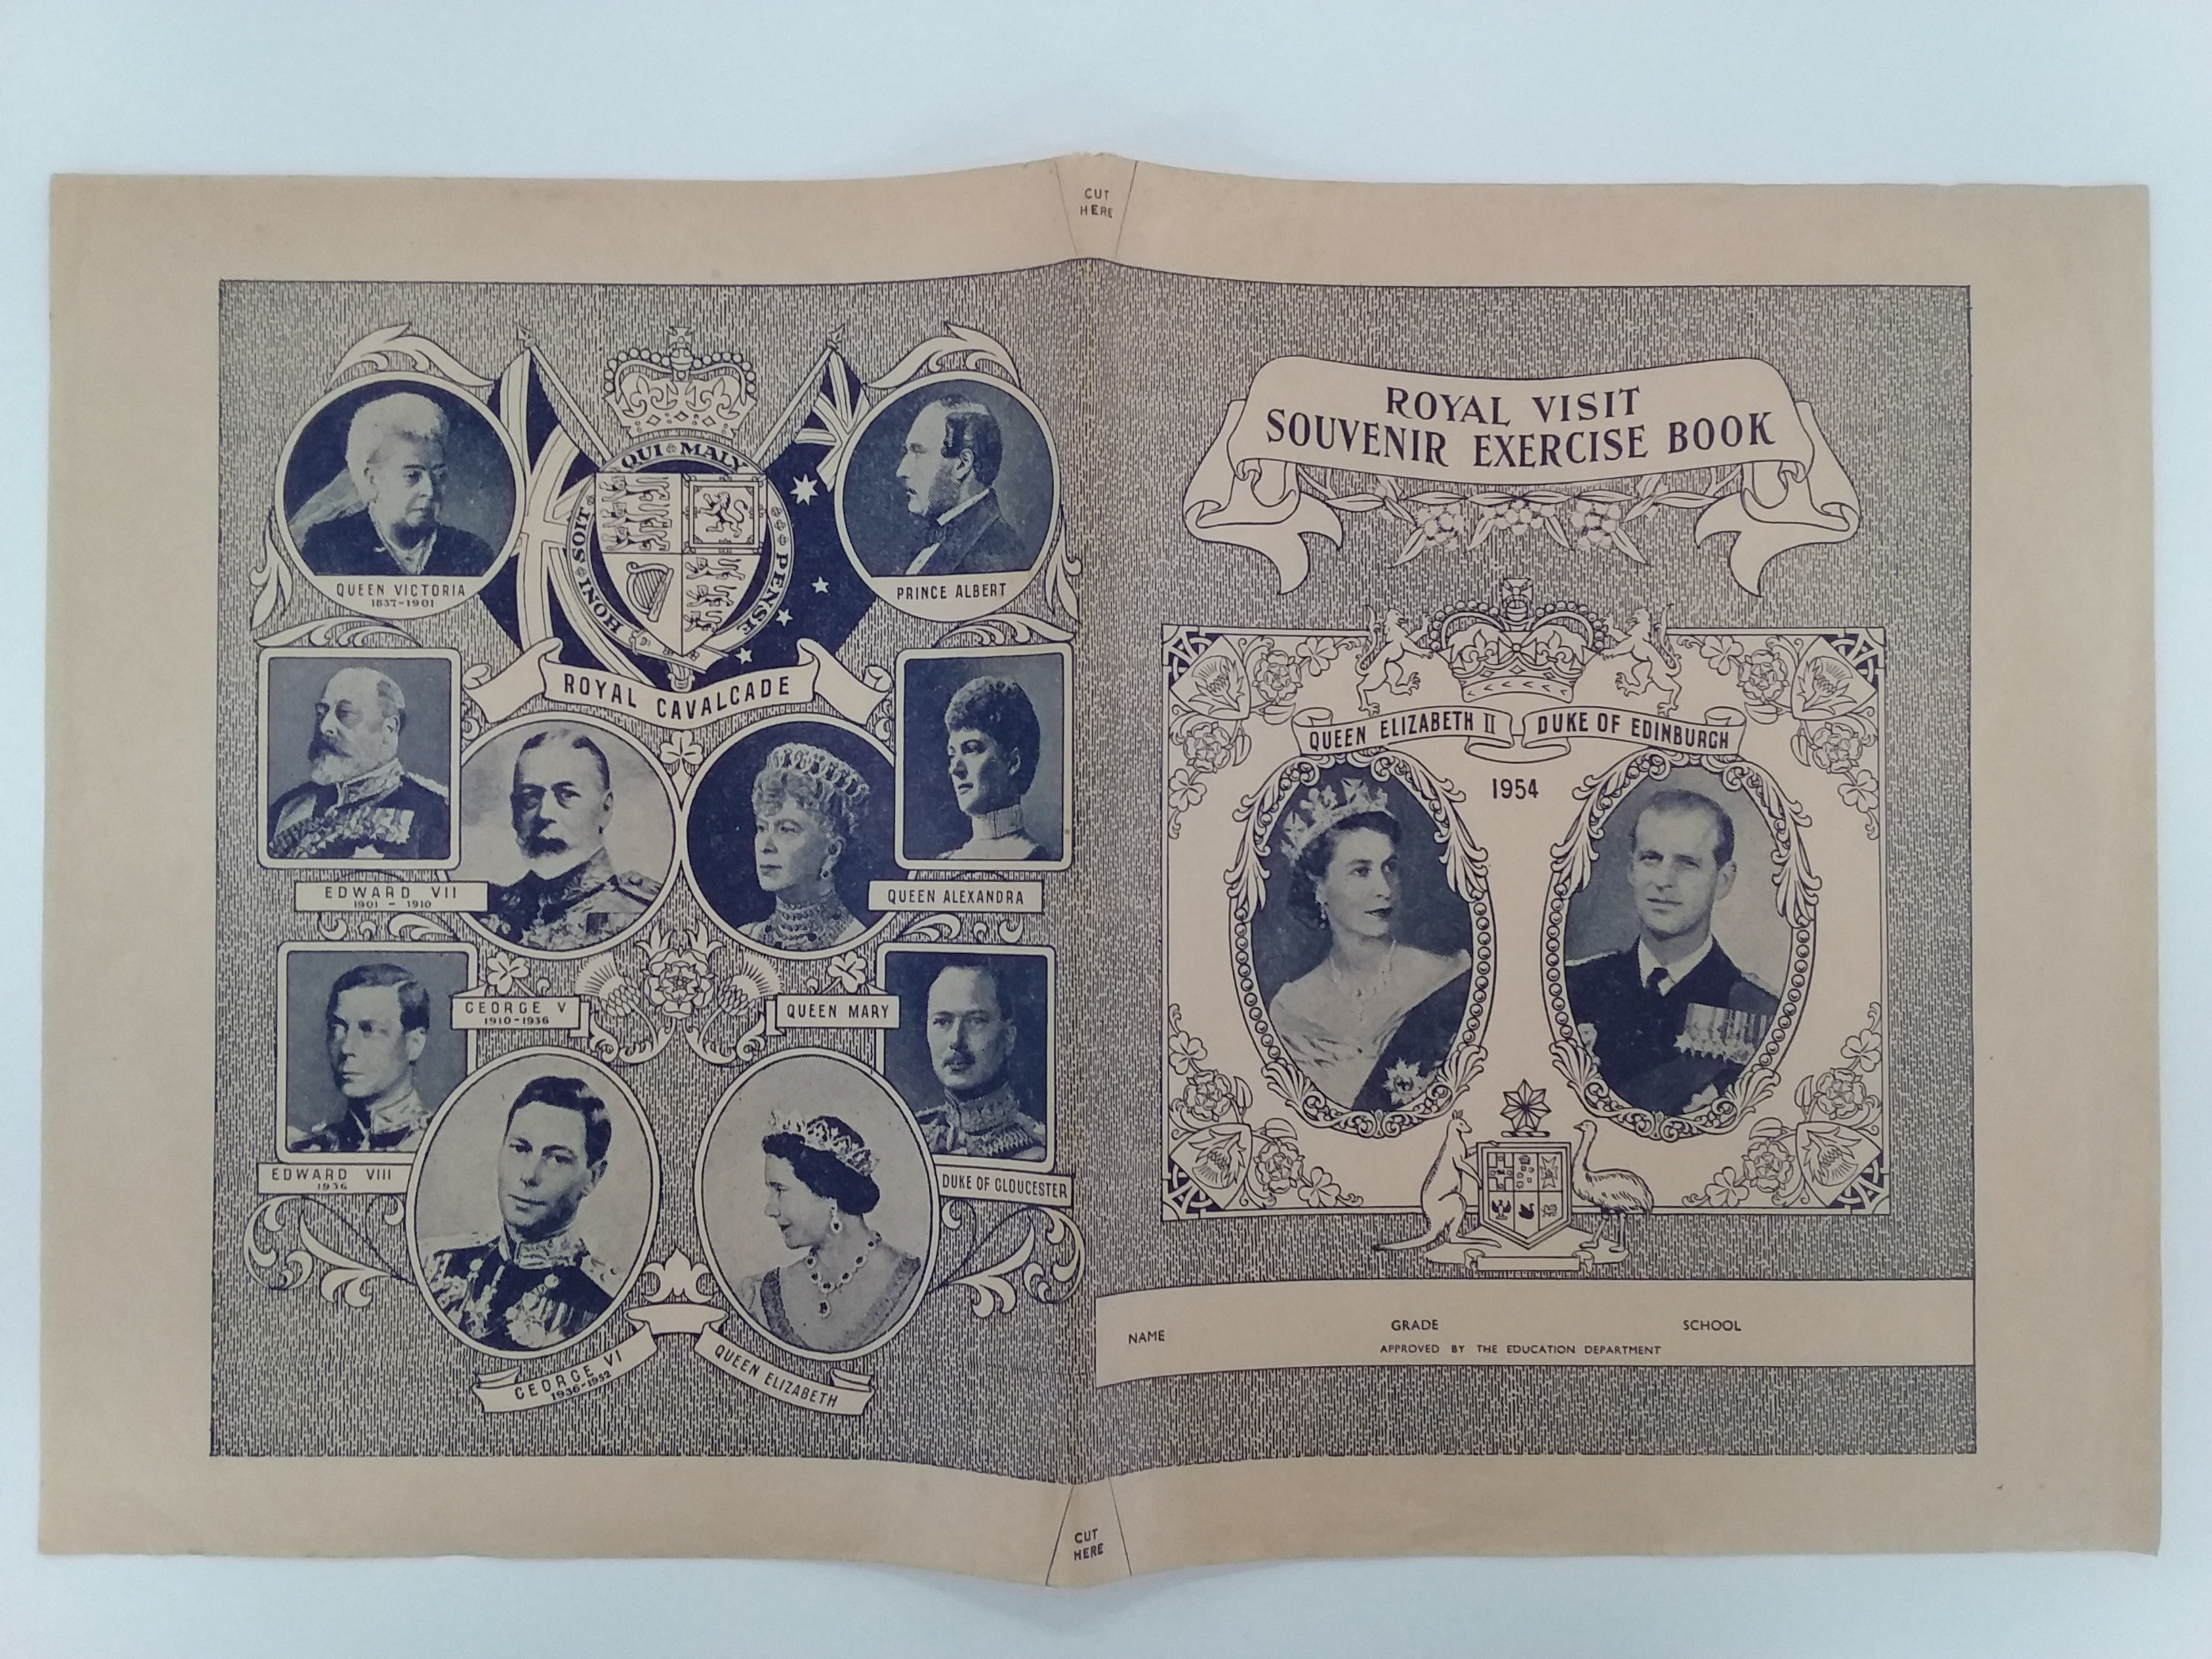 A school exercise book cover issued to children to commemorate the royal tour of 1954